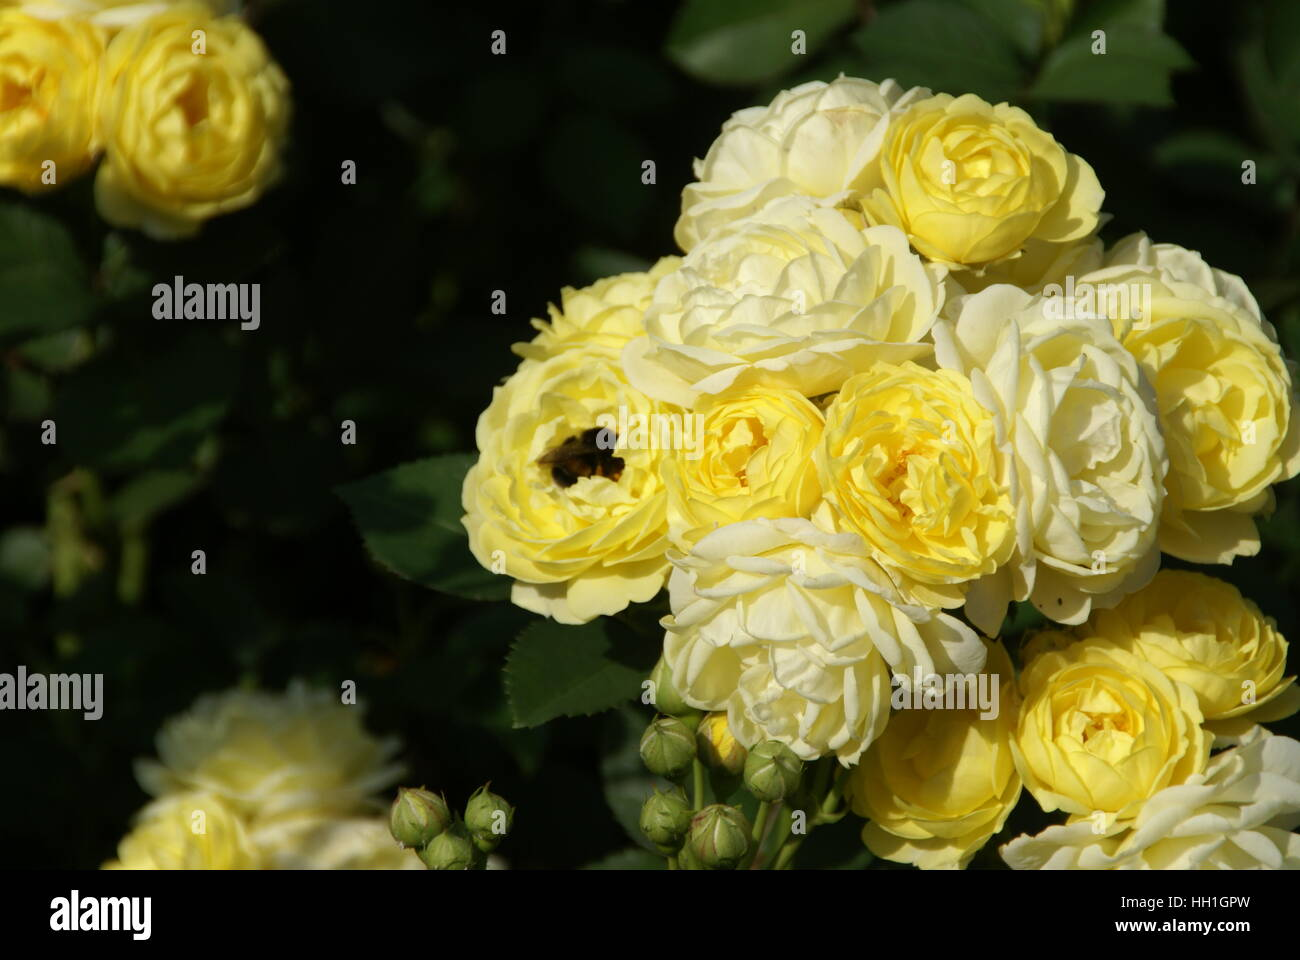 A bumble bee pollinating a yellow rose, it looks like its sleeping in a bed made out of rose petals. - Stock Image